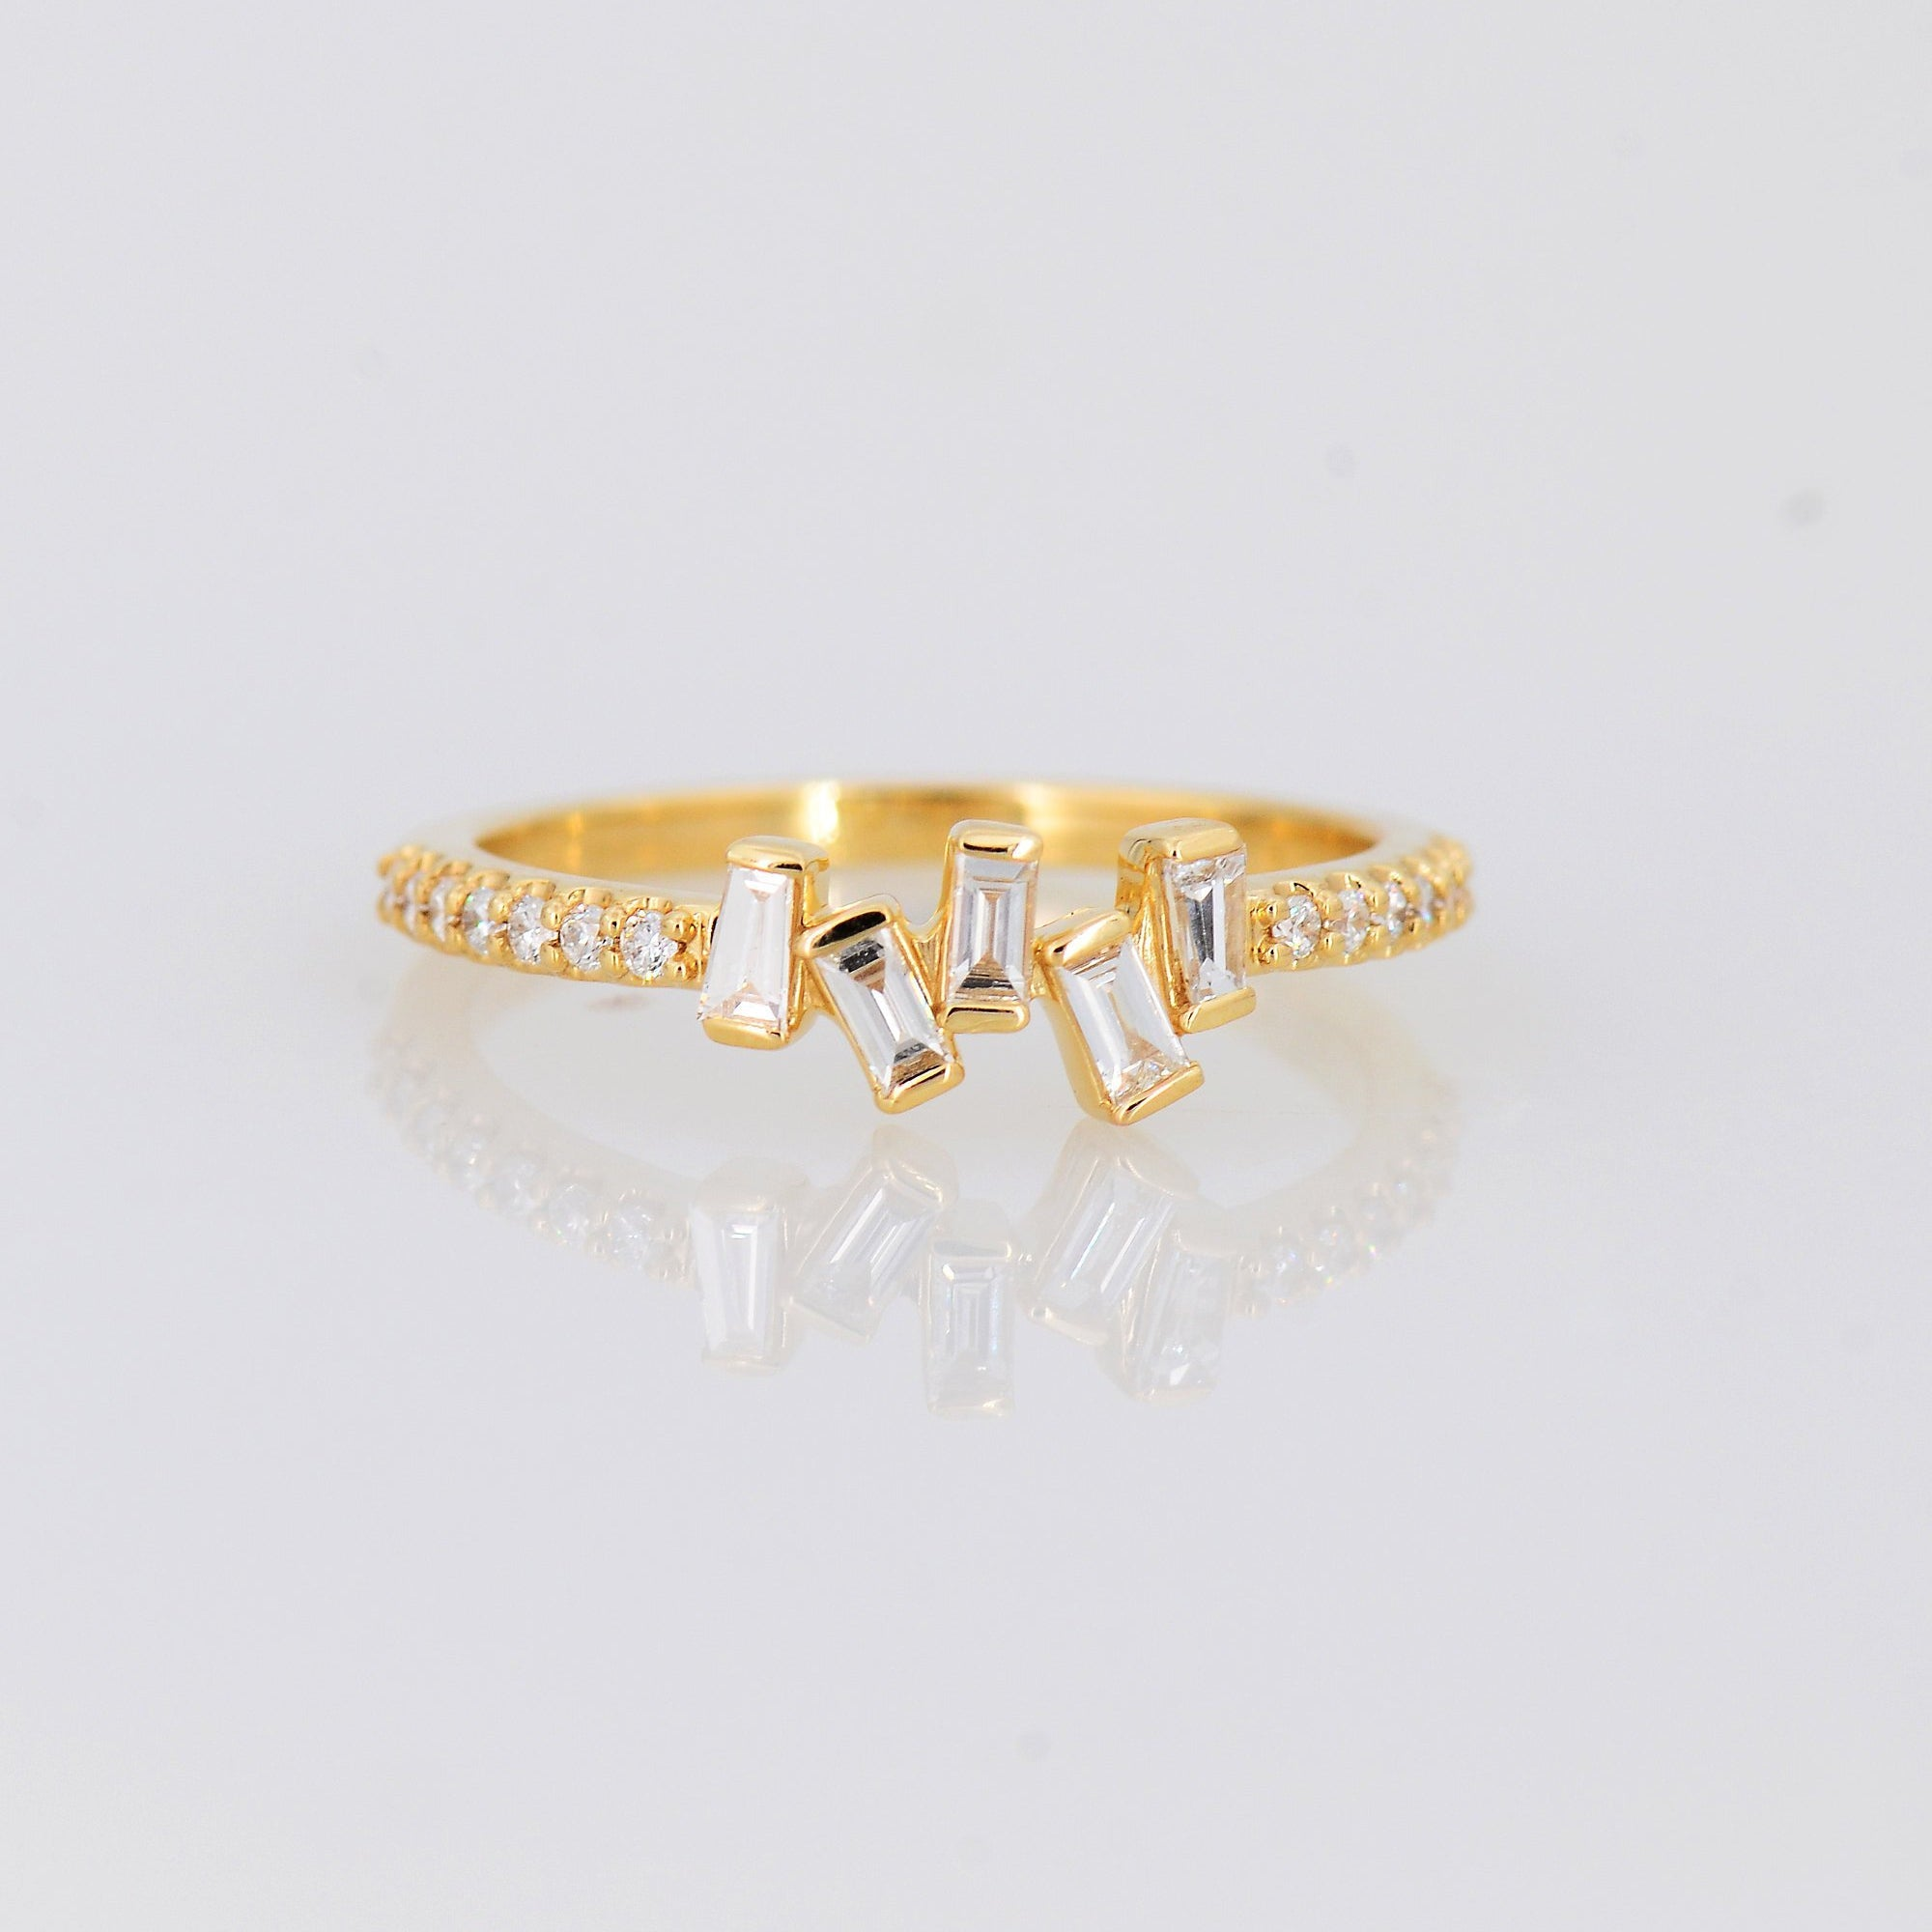 Delicate Diamond Ring, Baguette Diamond Ring